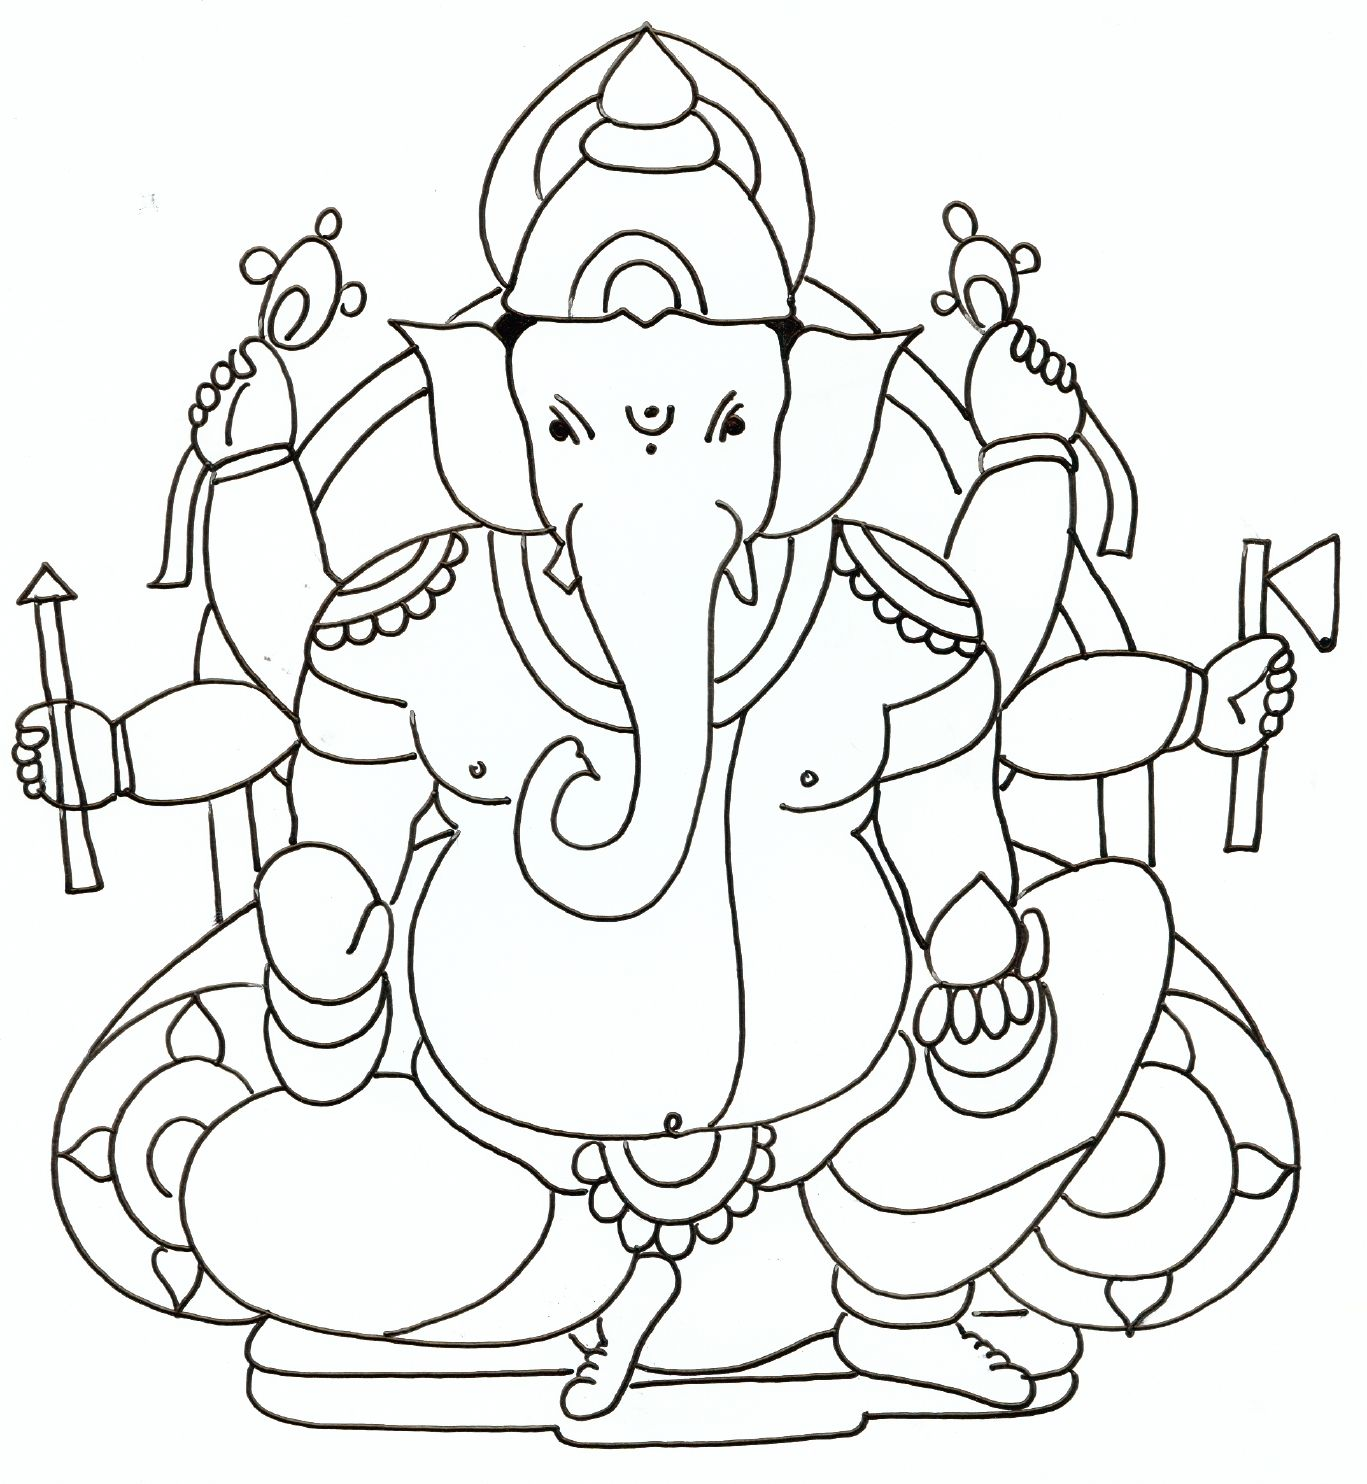 1367x1484 Ganesh Drawings For Kids Festivals Pencil Art